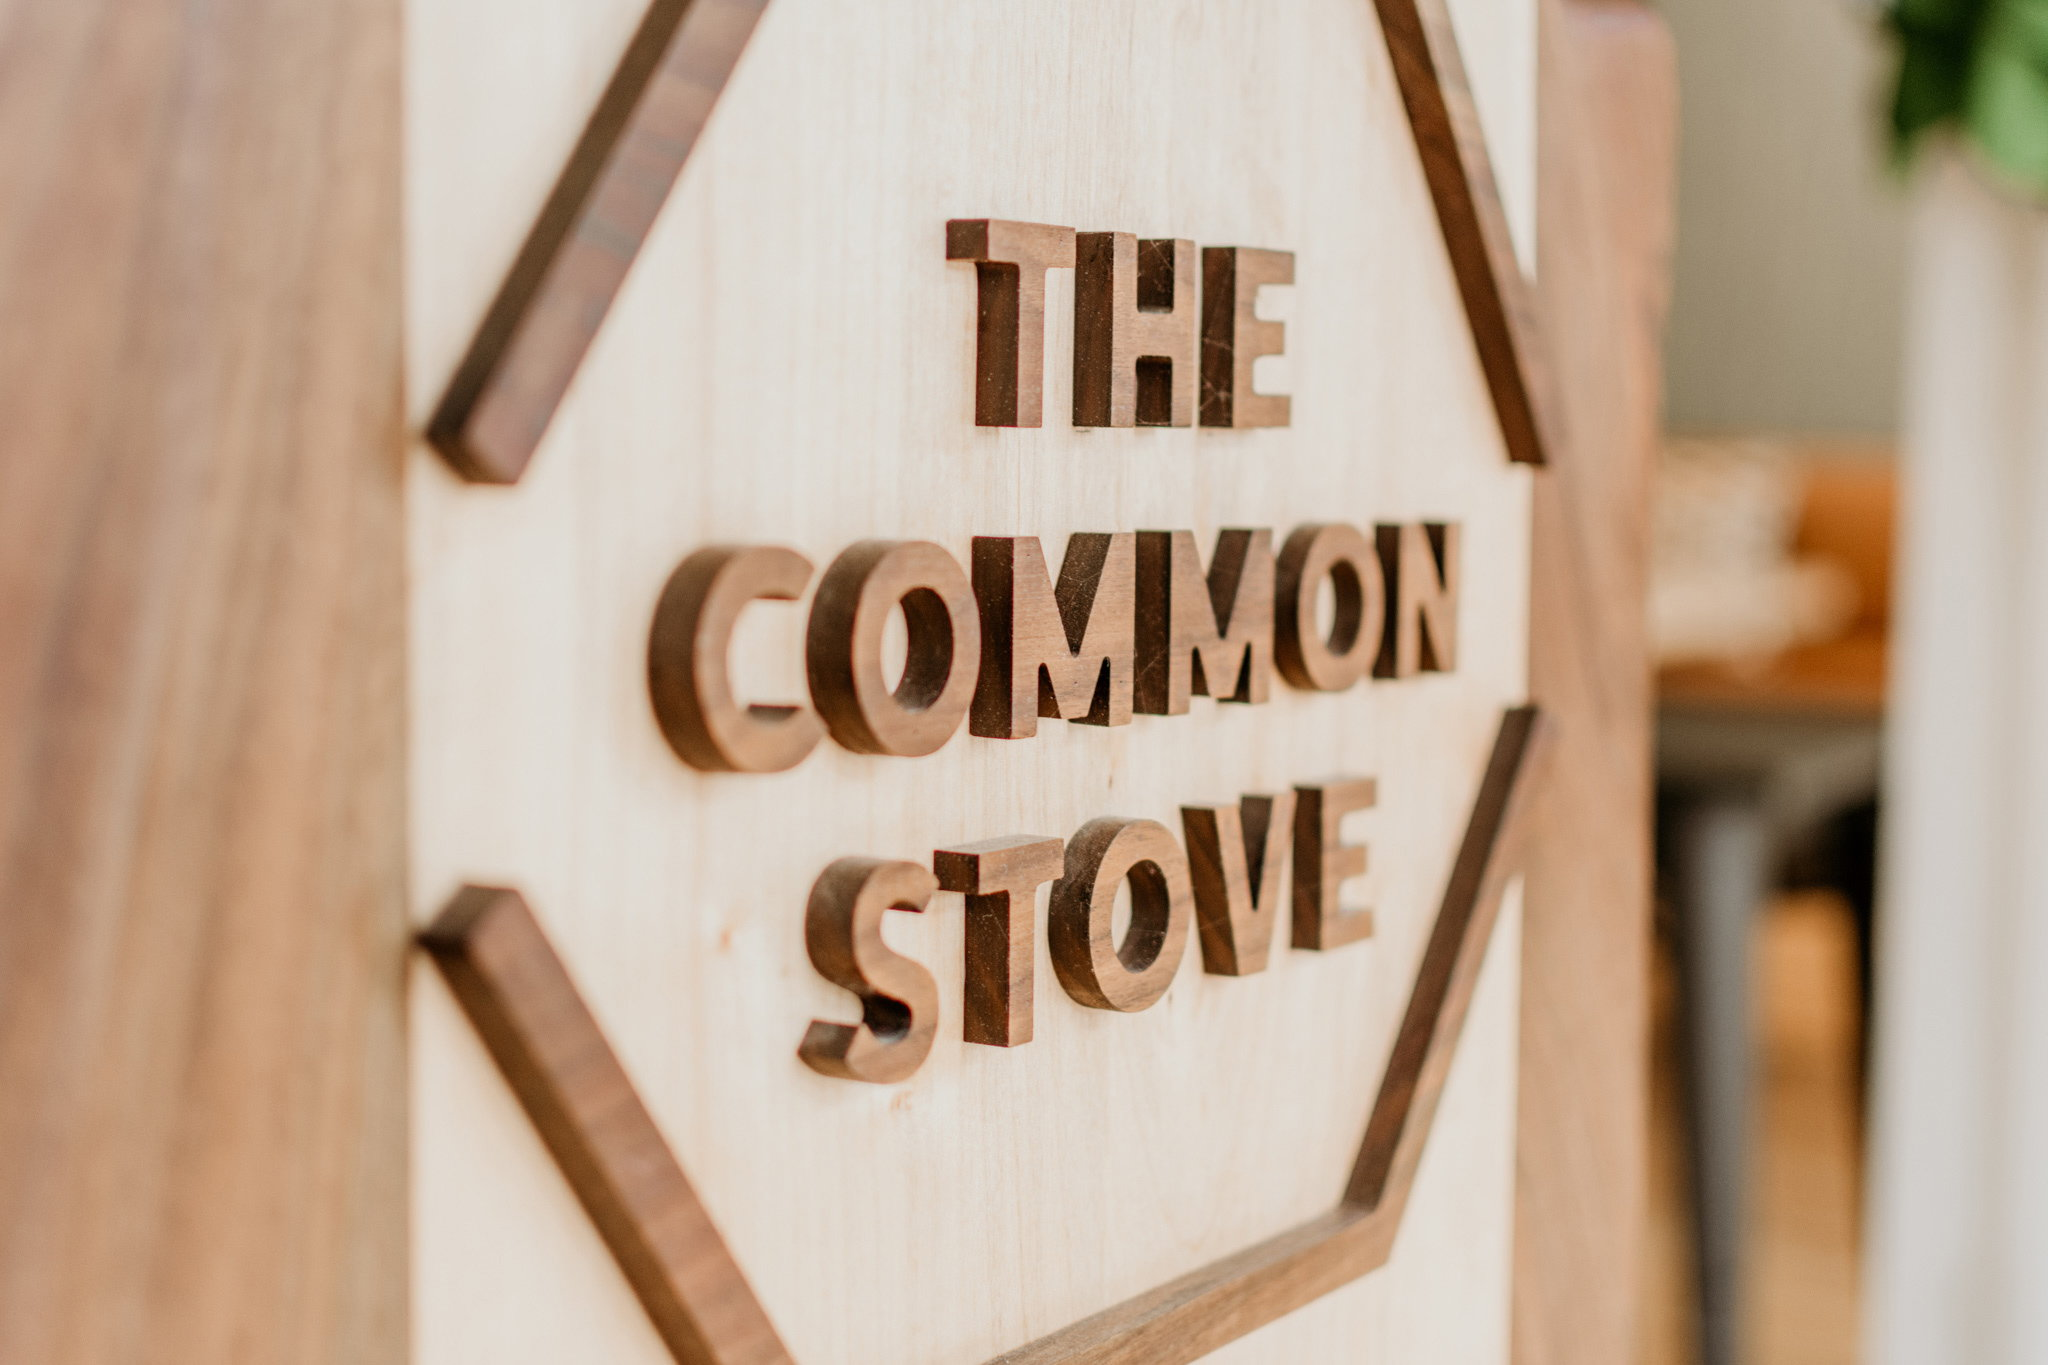 The Common Stove